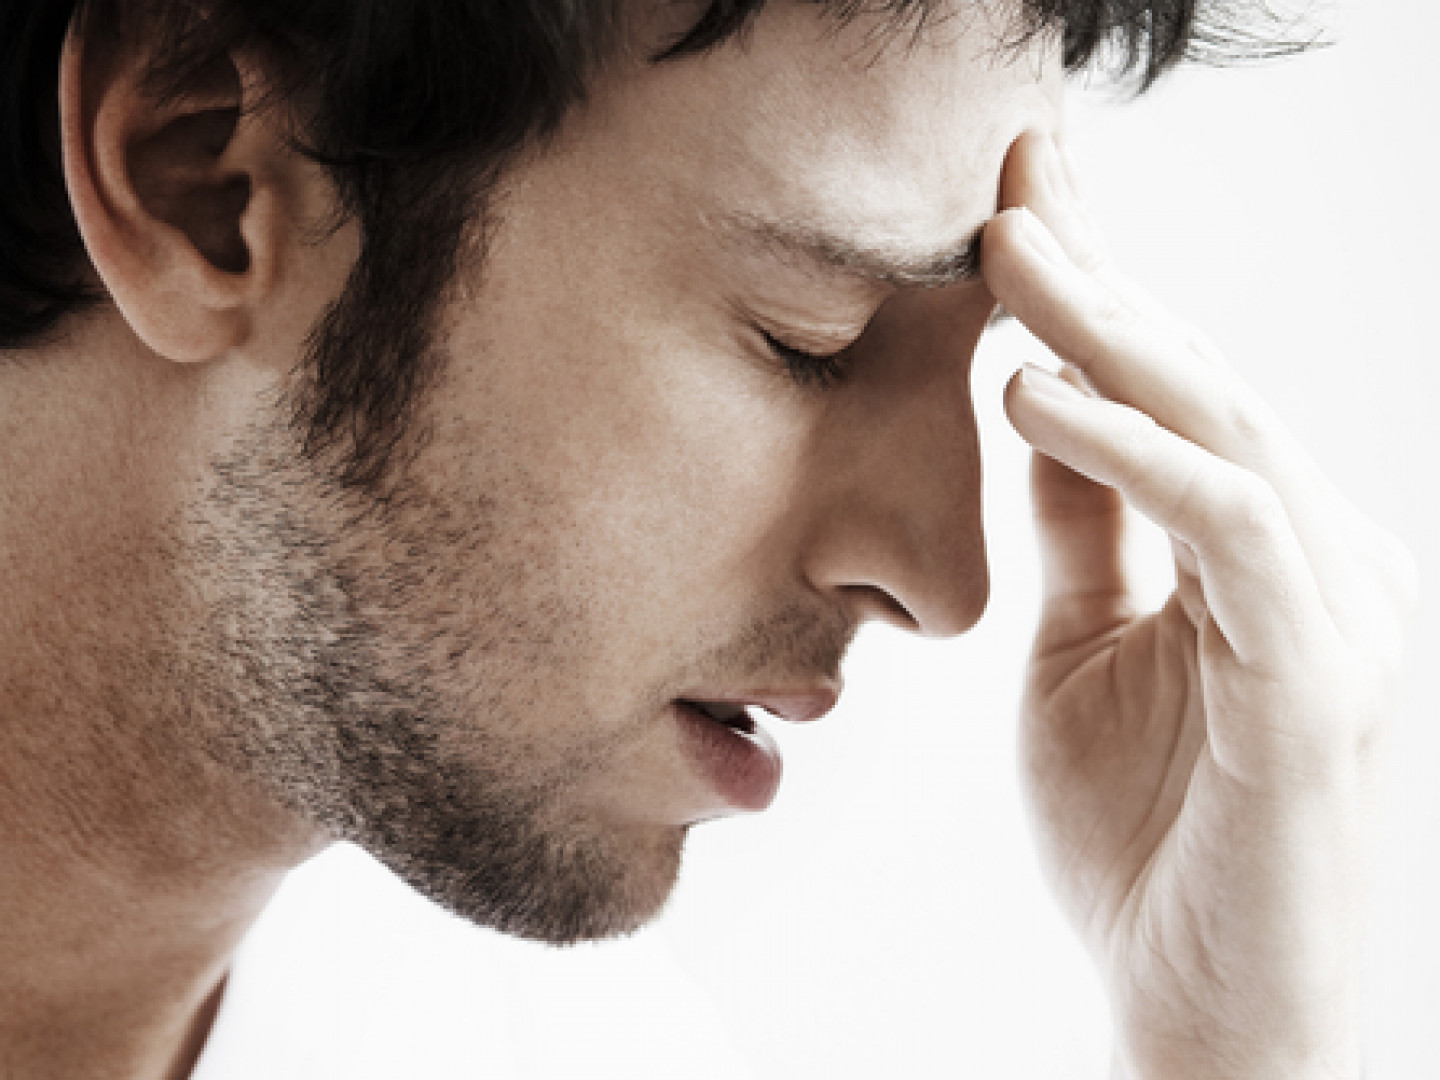 Helping Reduce Painful Migraine Symptoms